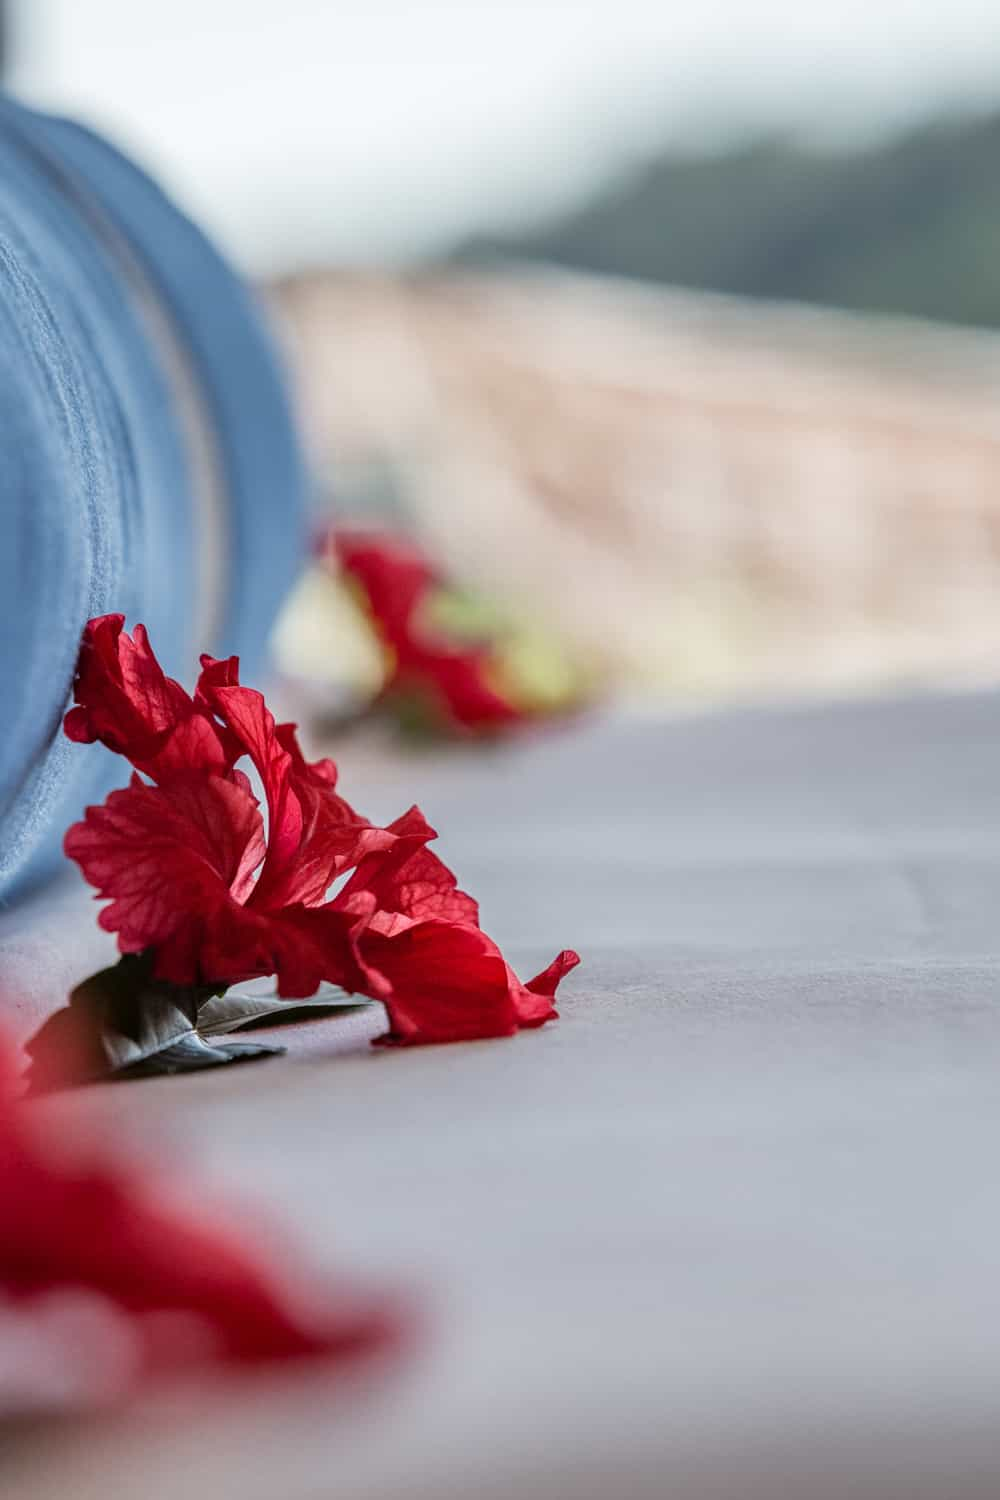 Red flowers on king bed for wedding guests in deluxe accommodations.